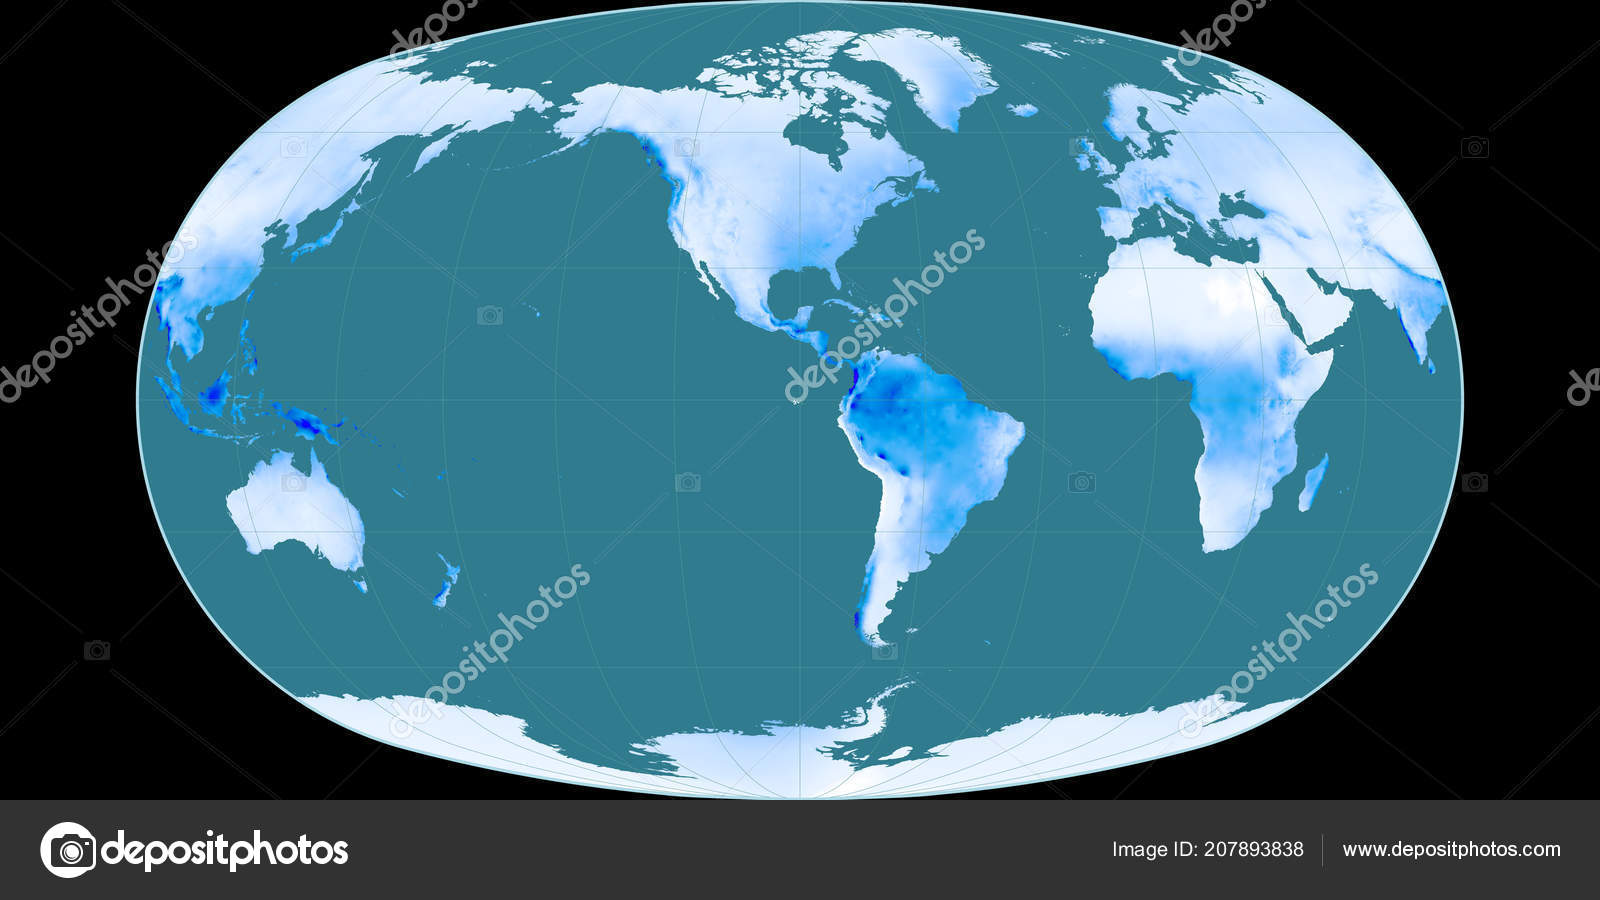 Precipitation World Map.World Map Baranyi Projection Centered West Longitude Mean Annual